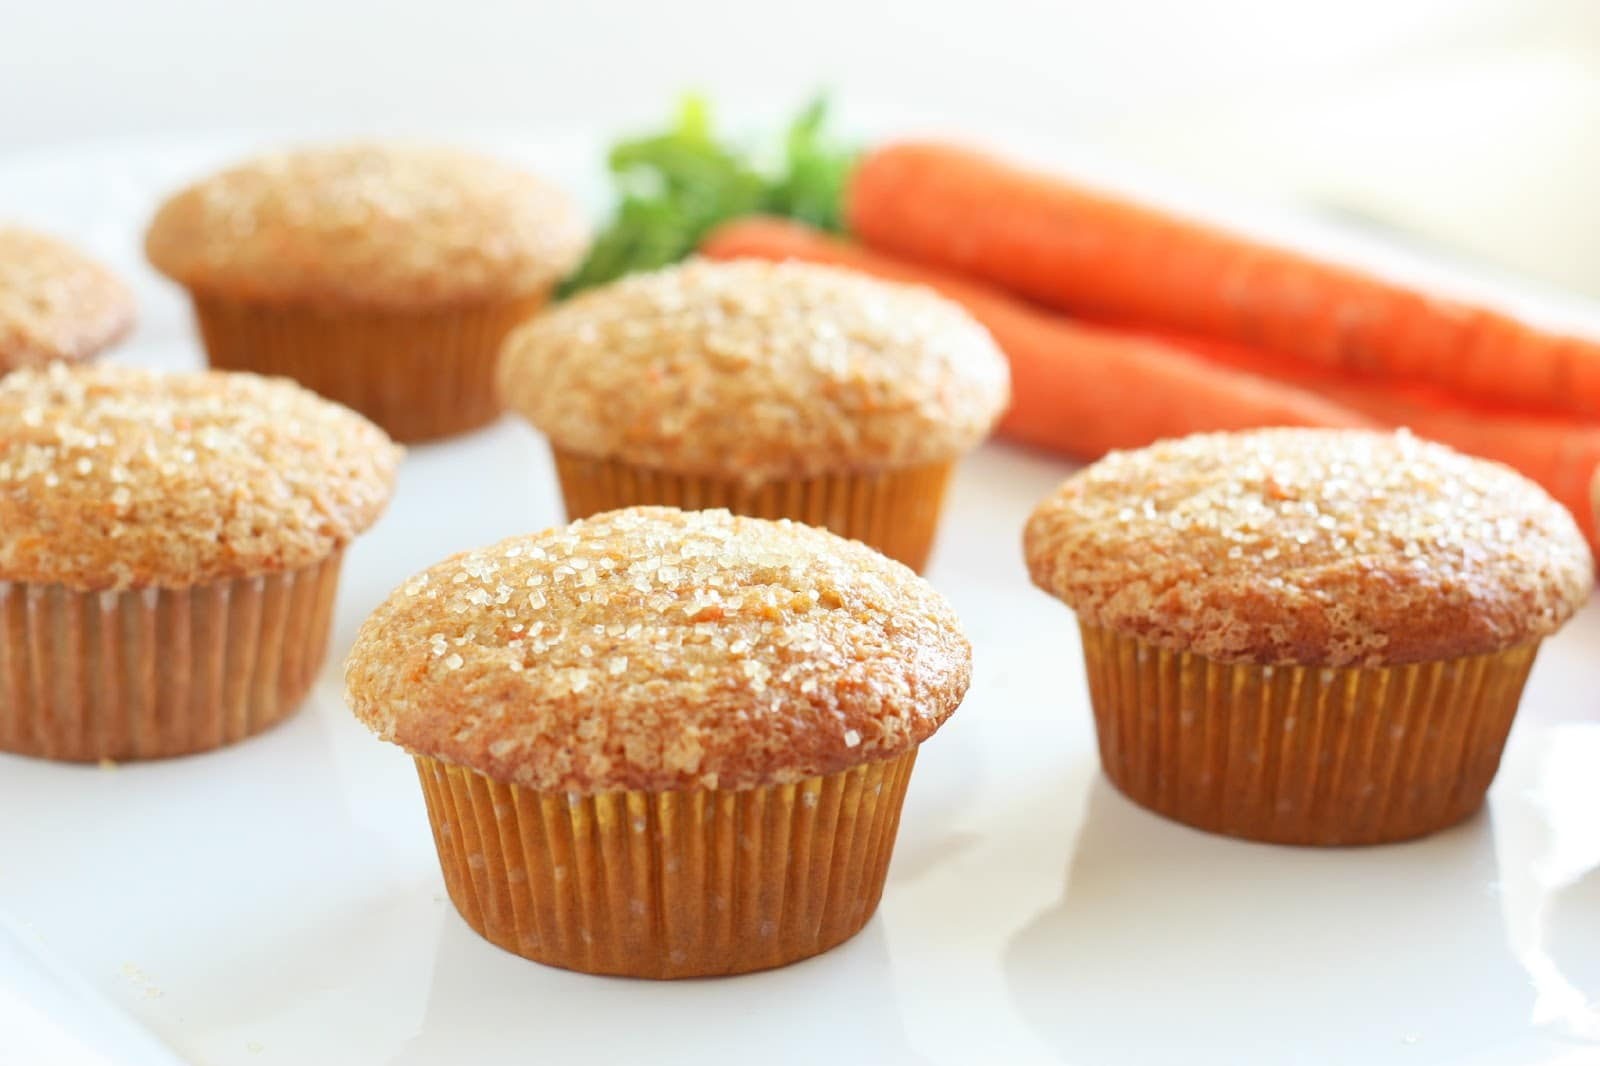 Filled Carrot Cake Cupcakes